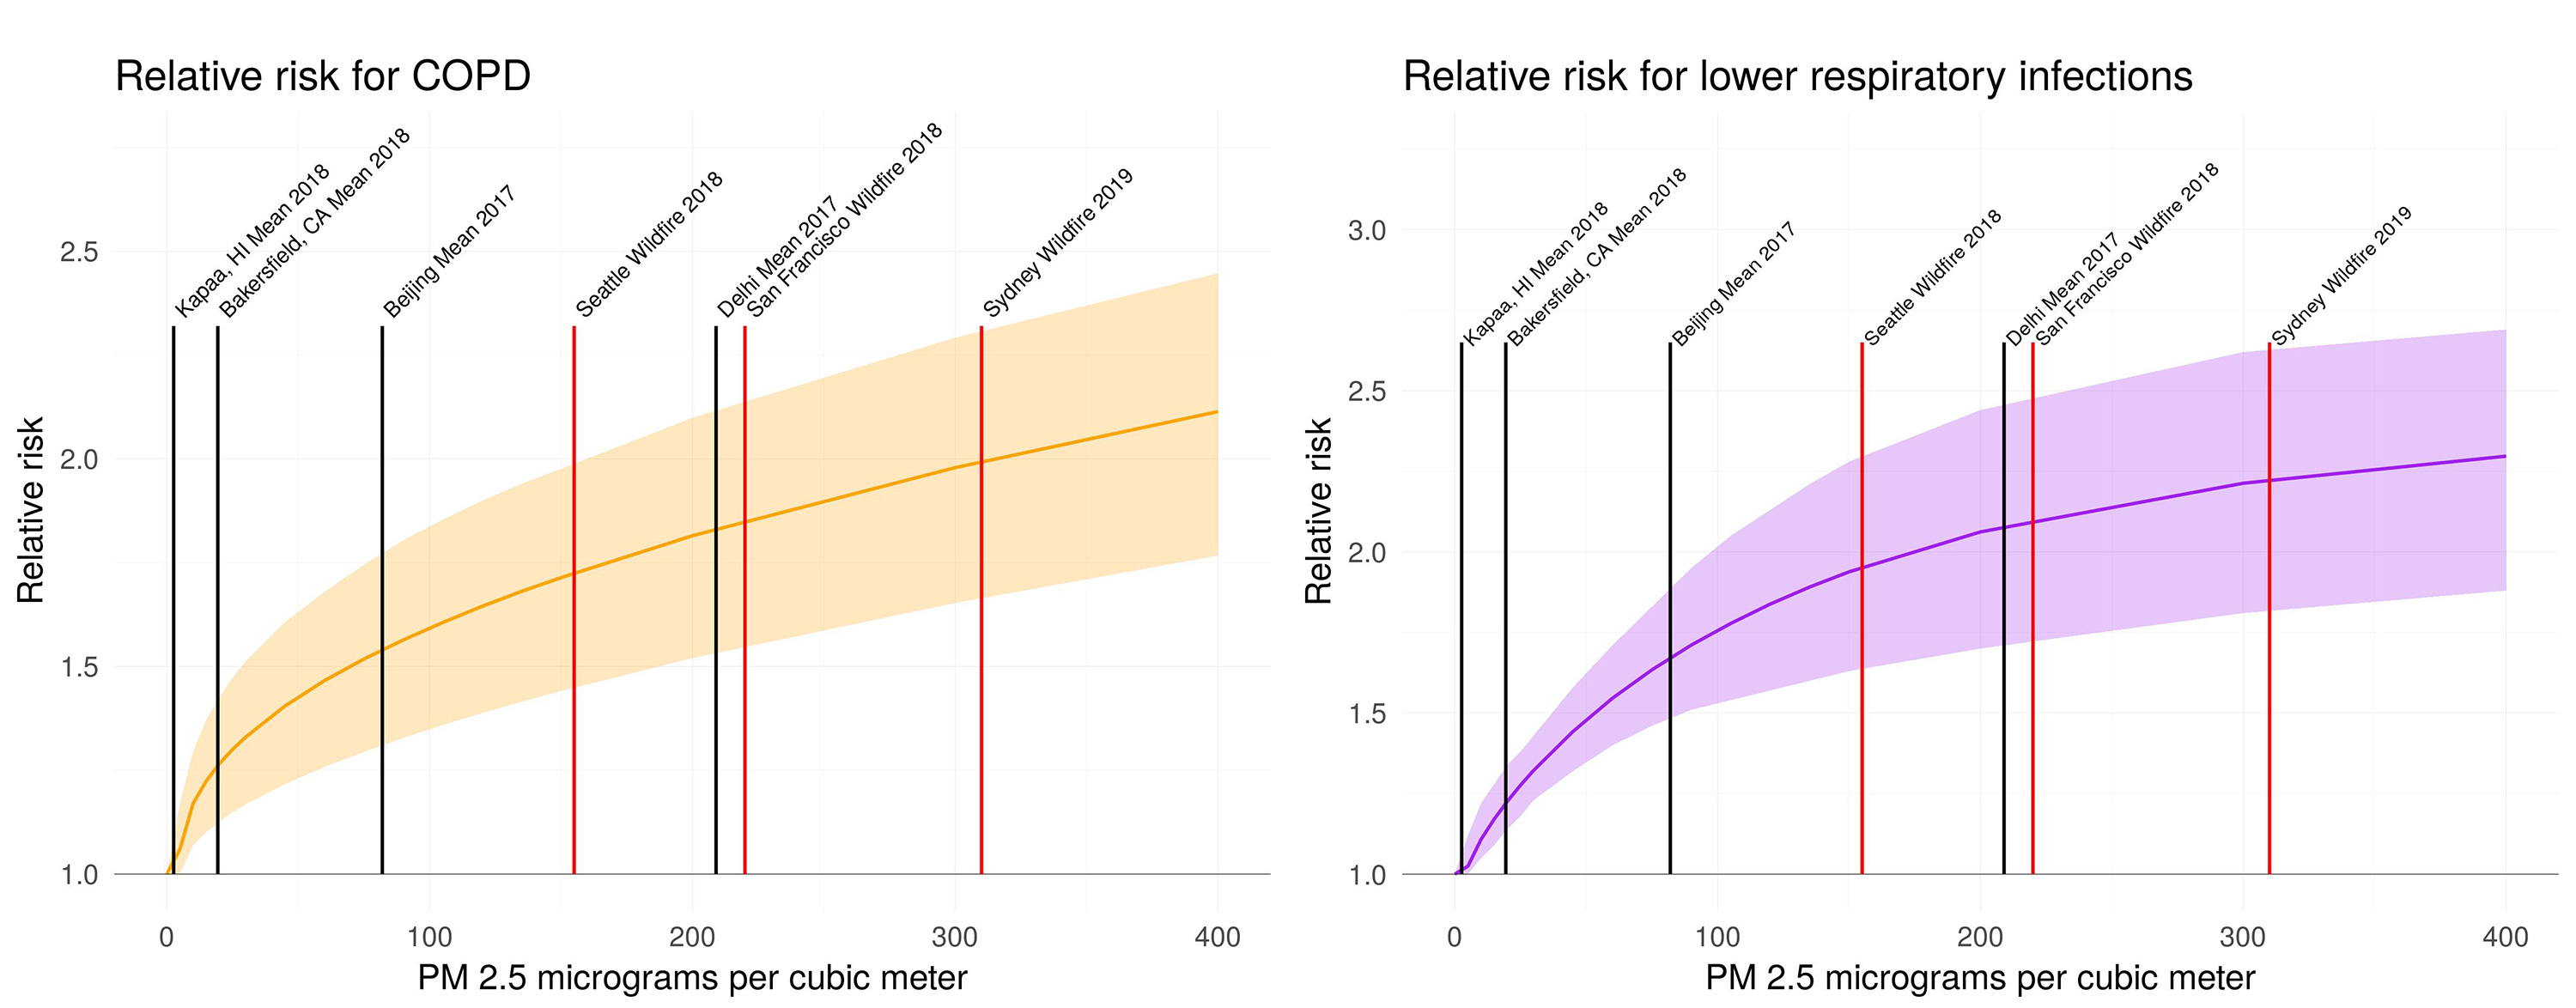 Relative risks for COPD/lower respiratory infections go up with increasing PM2.5. Shown here are relative risks for several cities, including Seattle, San Francisco and Sydney during recent wildfires.